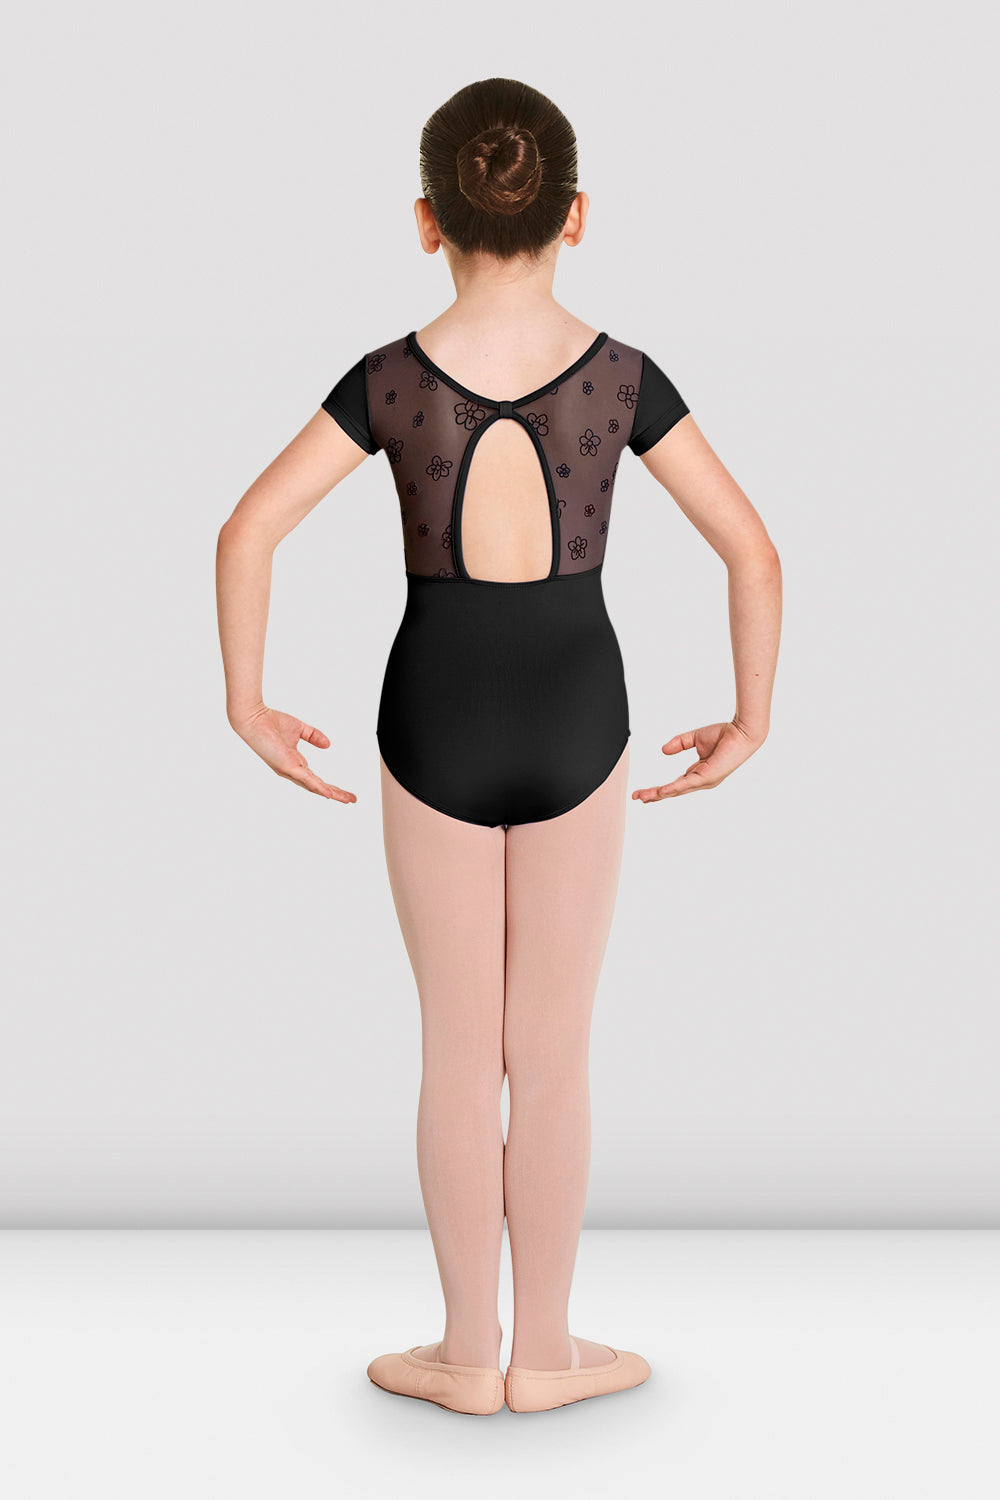 The back of a young female ballet dancer wearing the Girls Antheia short sleeve sweetheart leotard